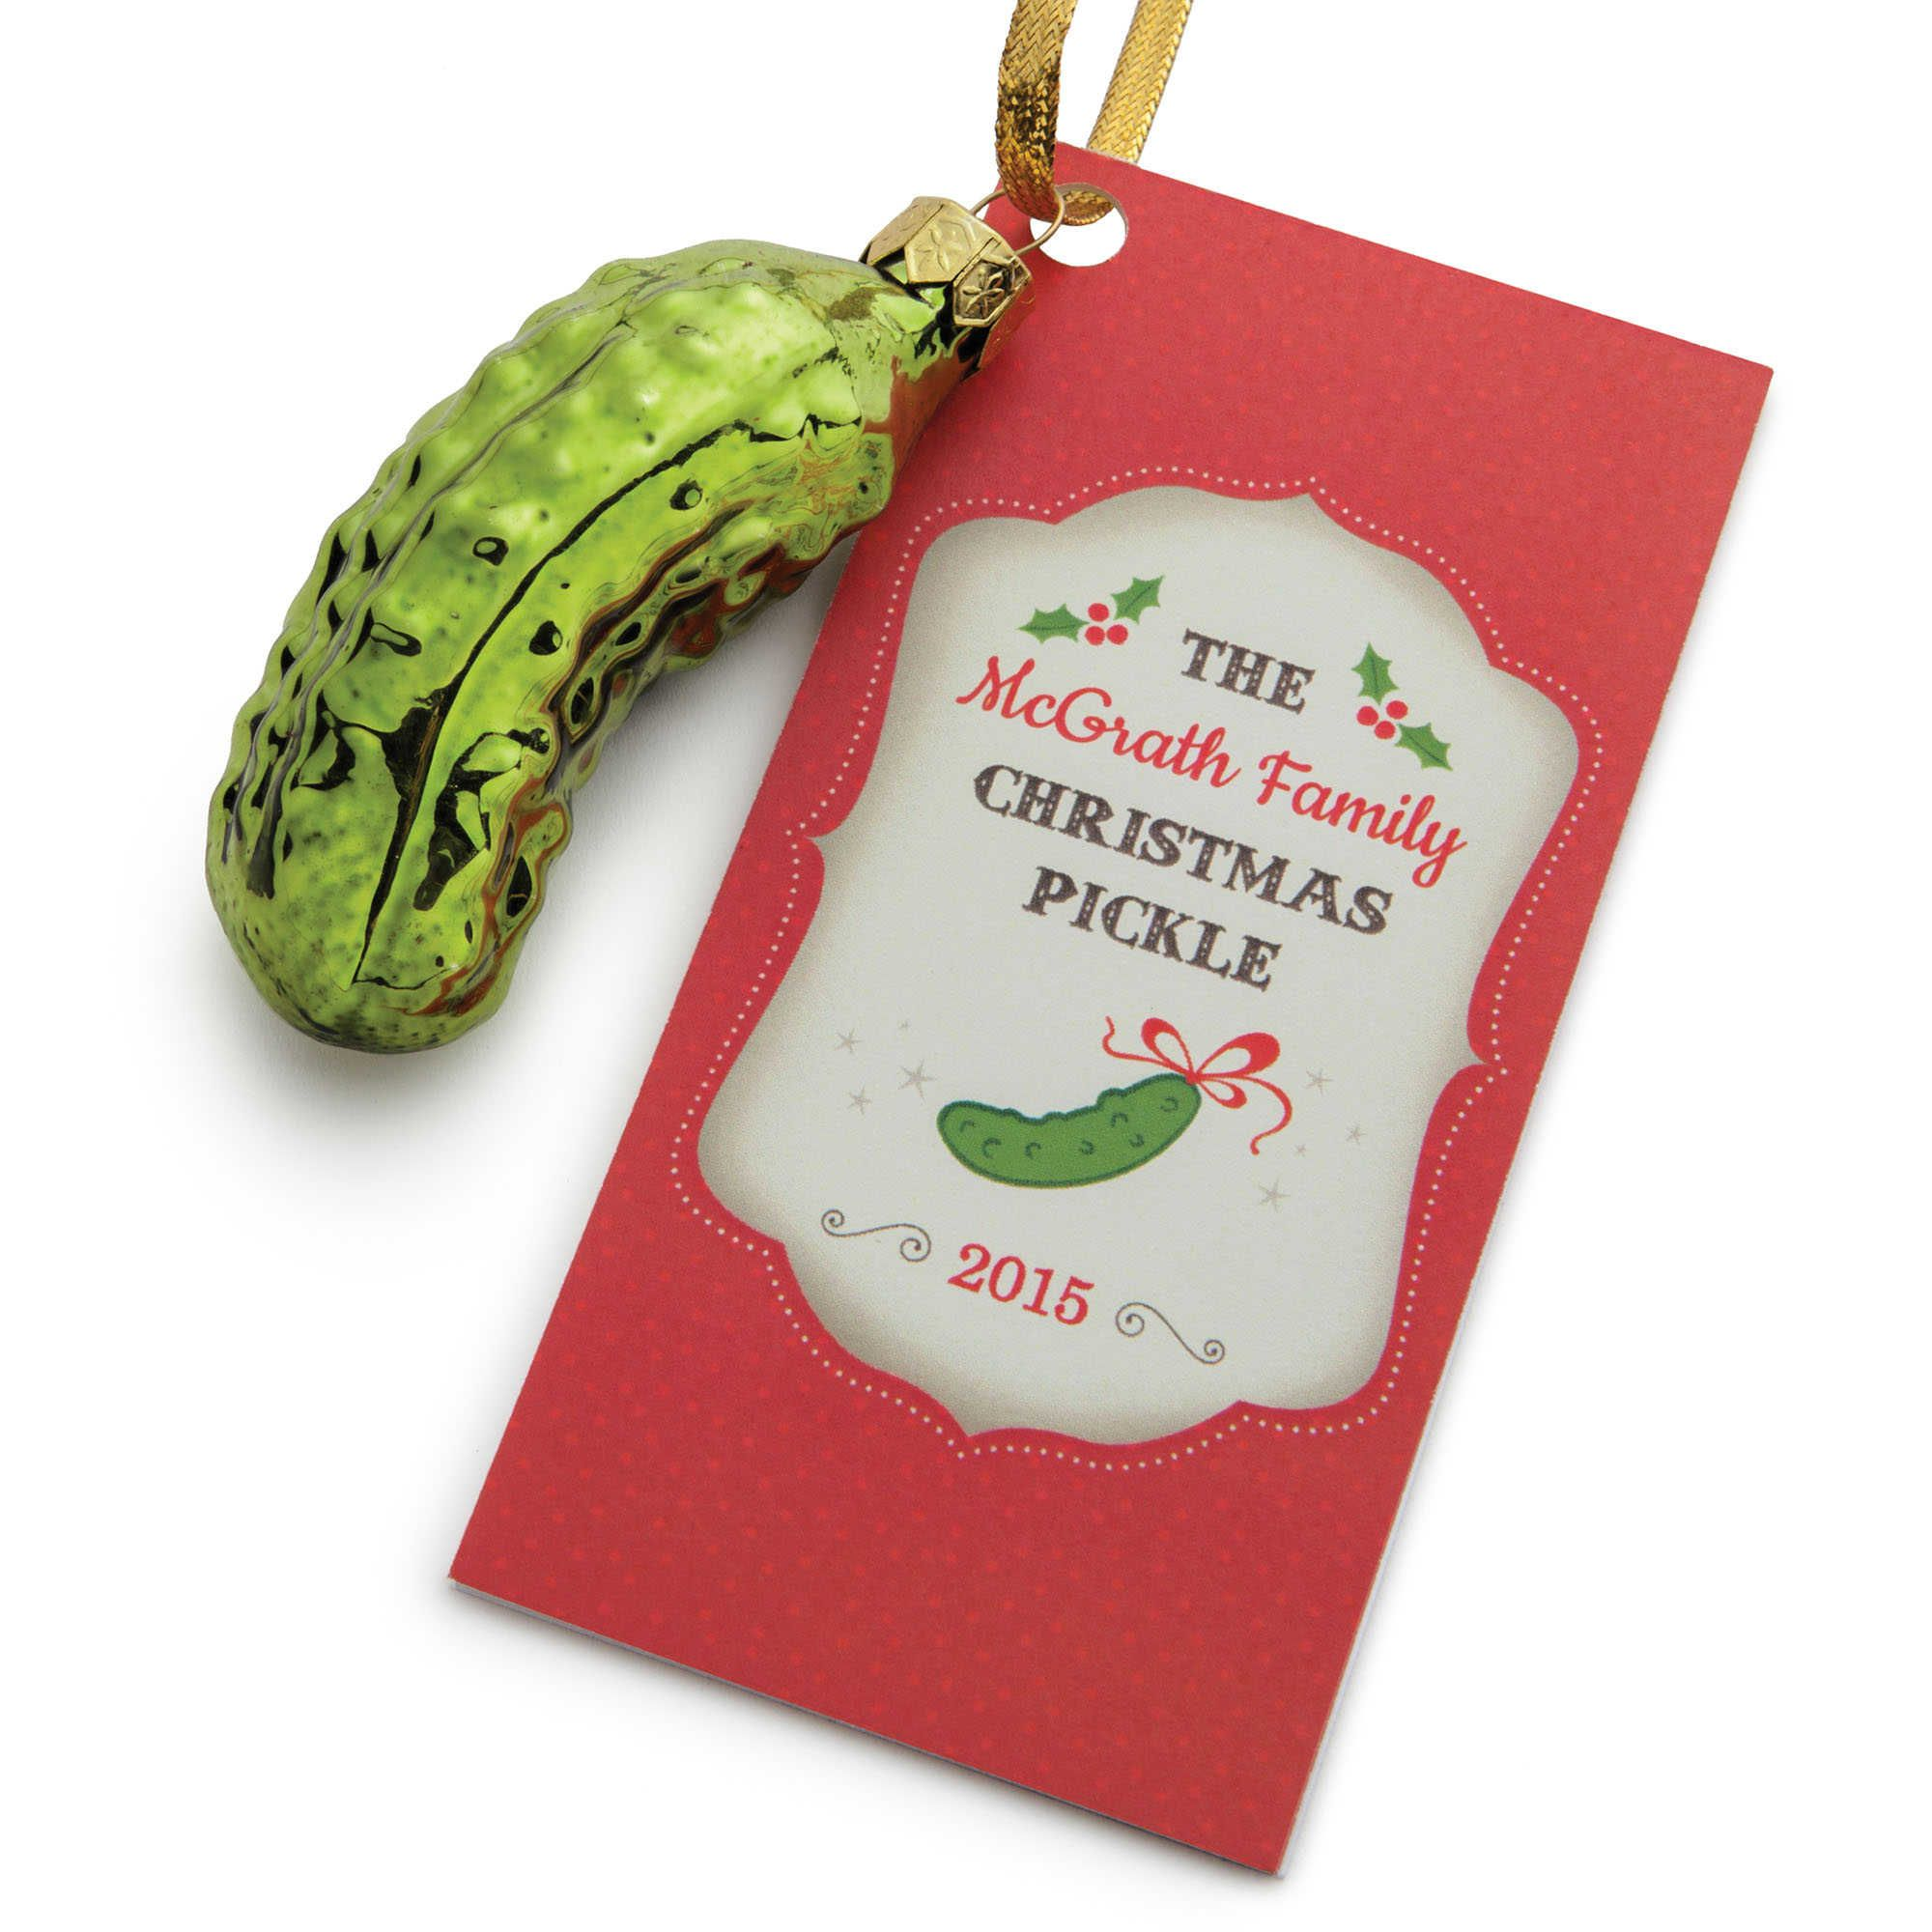 graphic about Christmas Pickle Story Printable identify Heritage of the Pickle Xmas Ornament Society